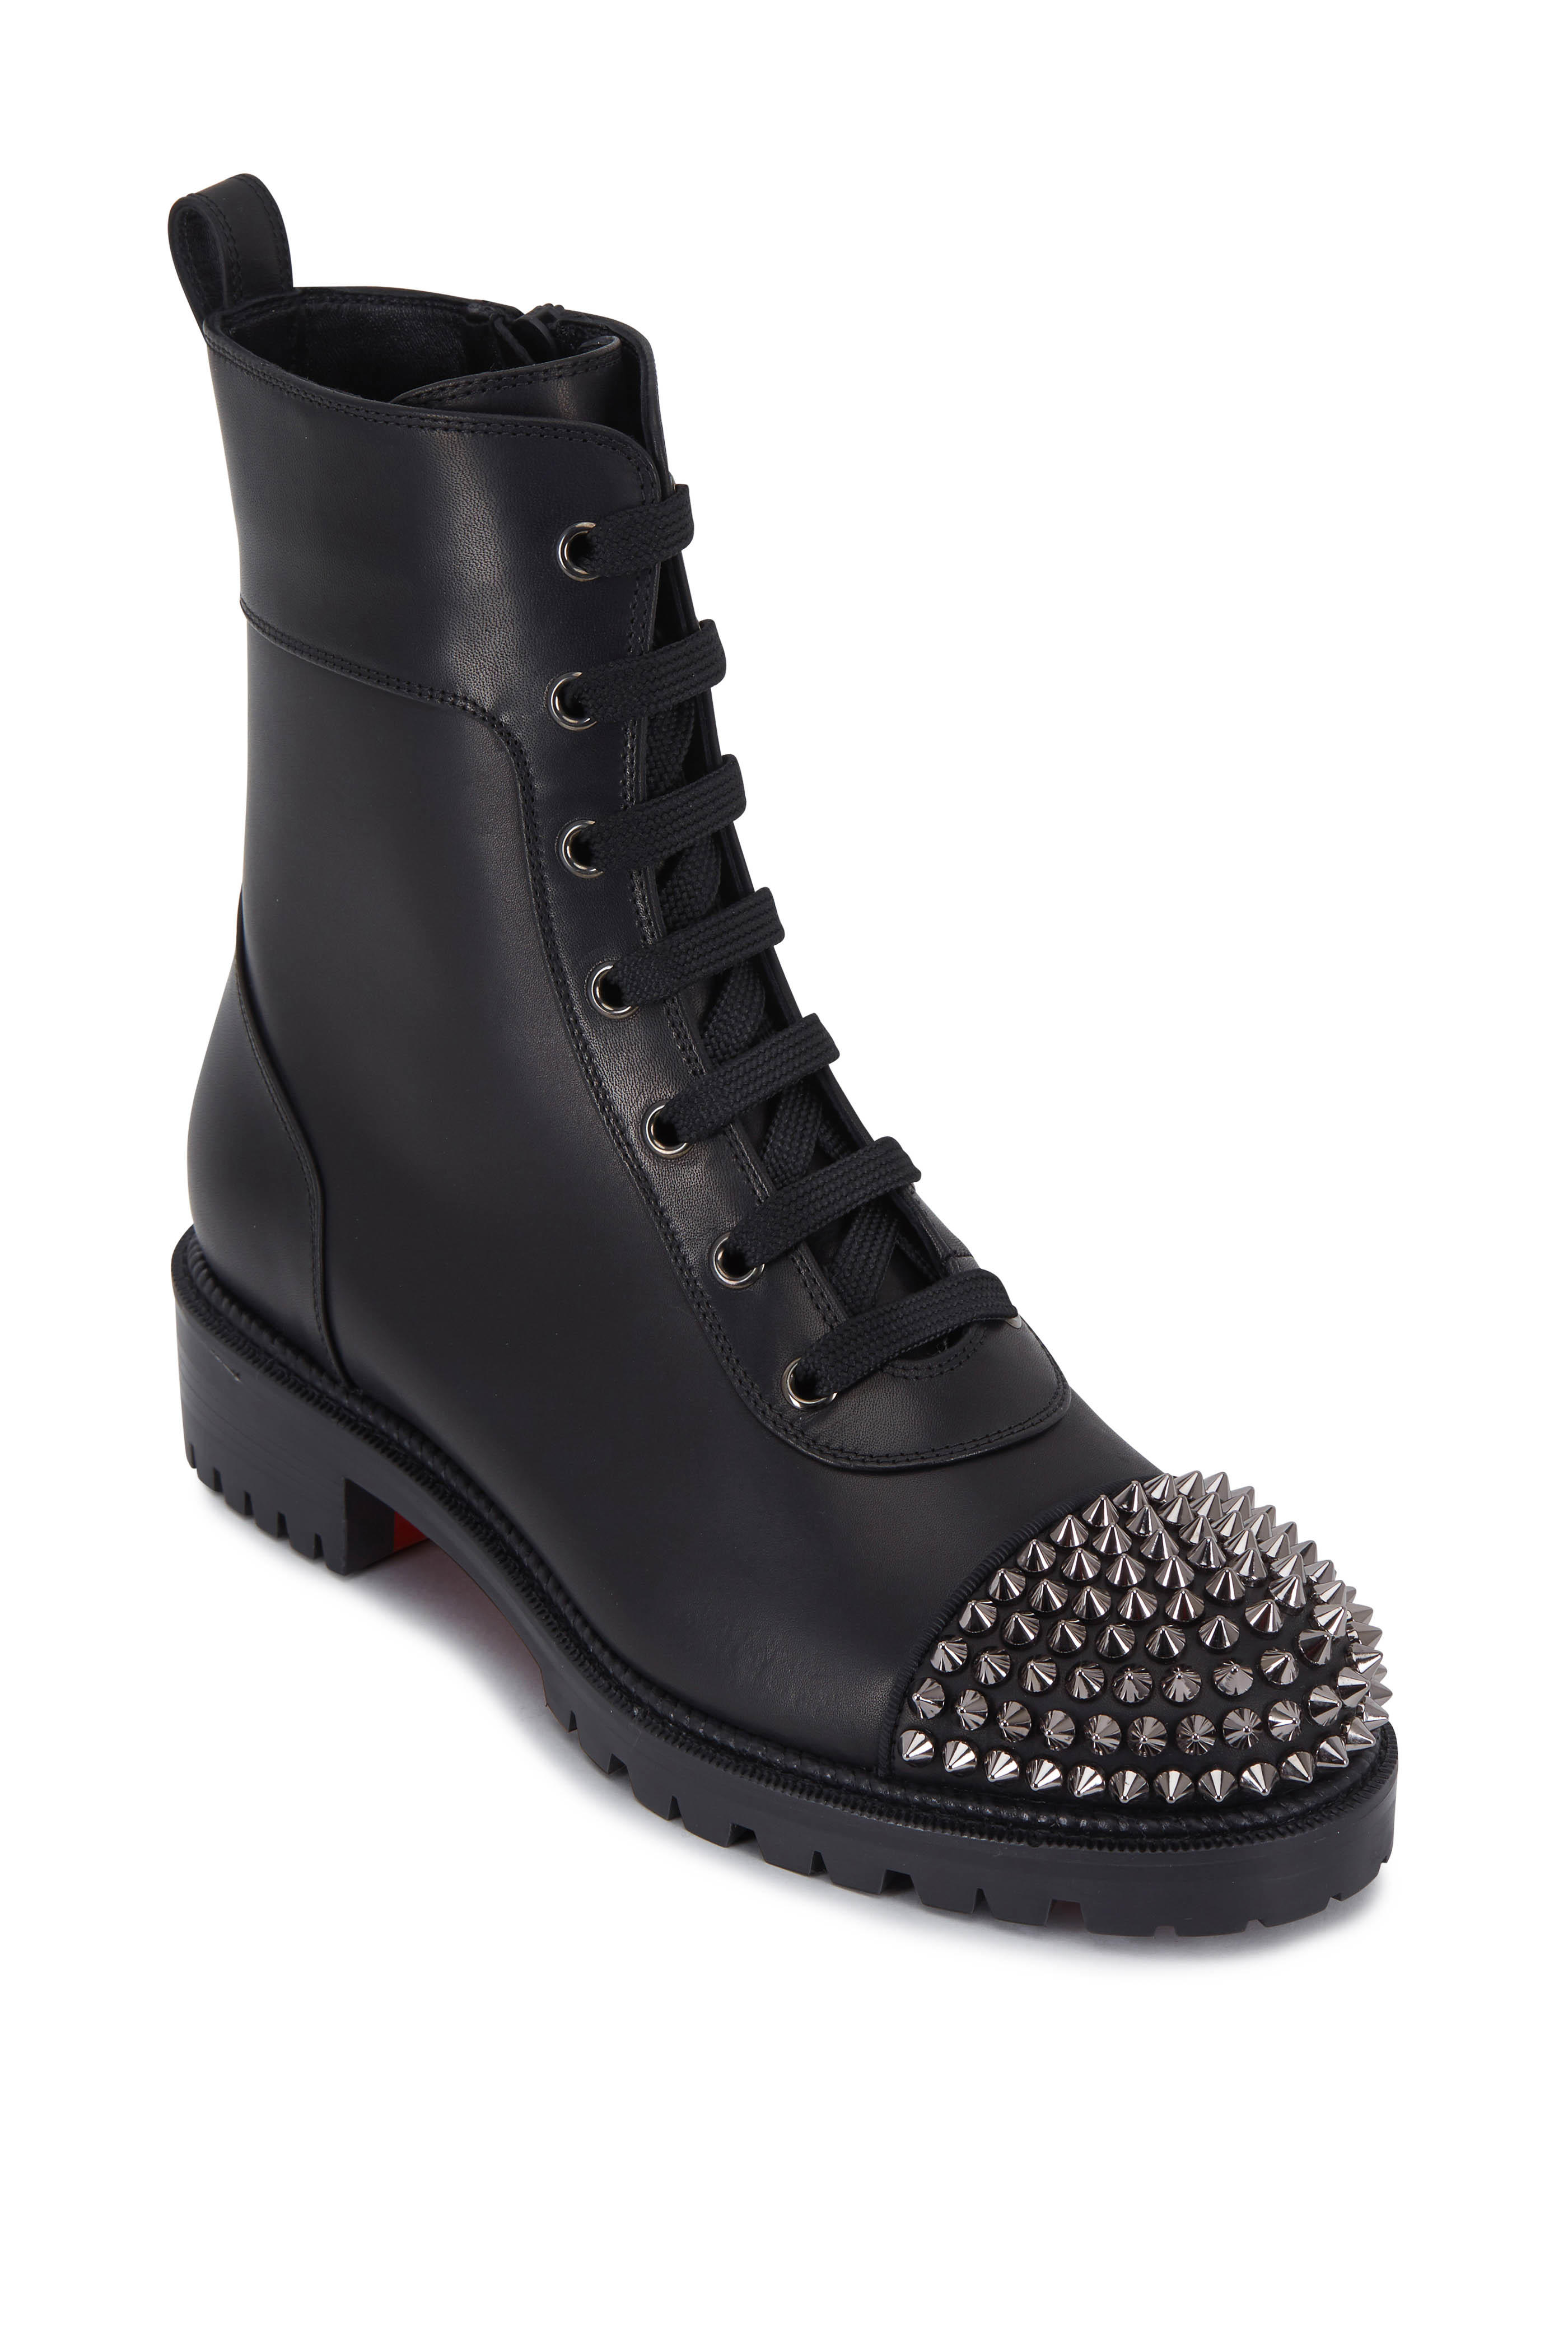 get cheap 1358e a0c27 Christian Louboutin - TS Croc Black Leather Studded Cap-Toe ...